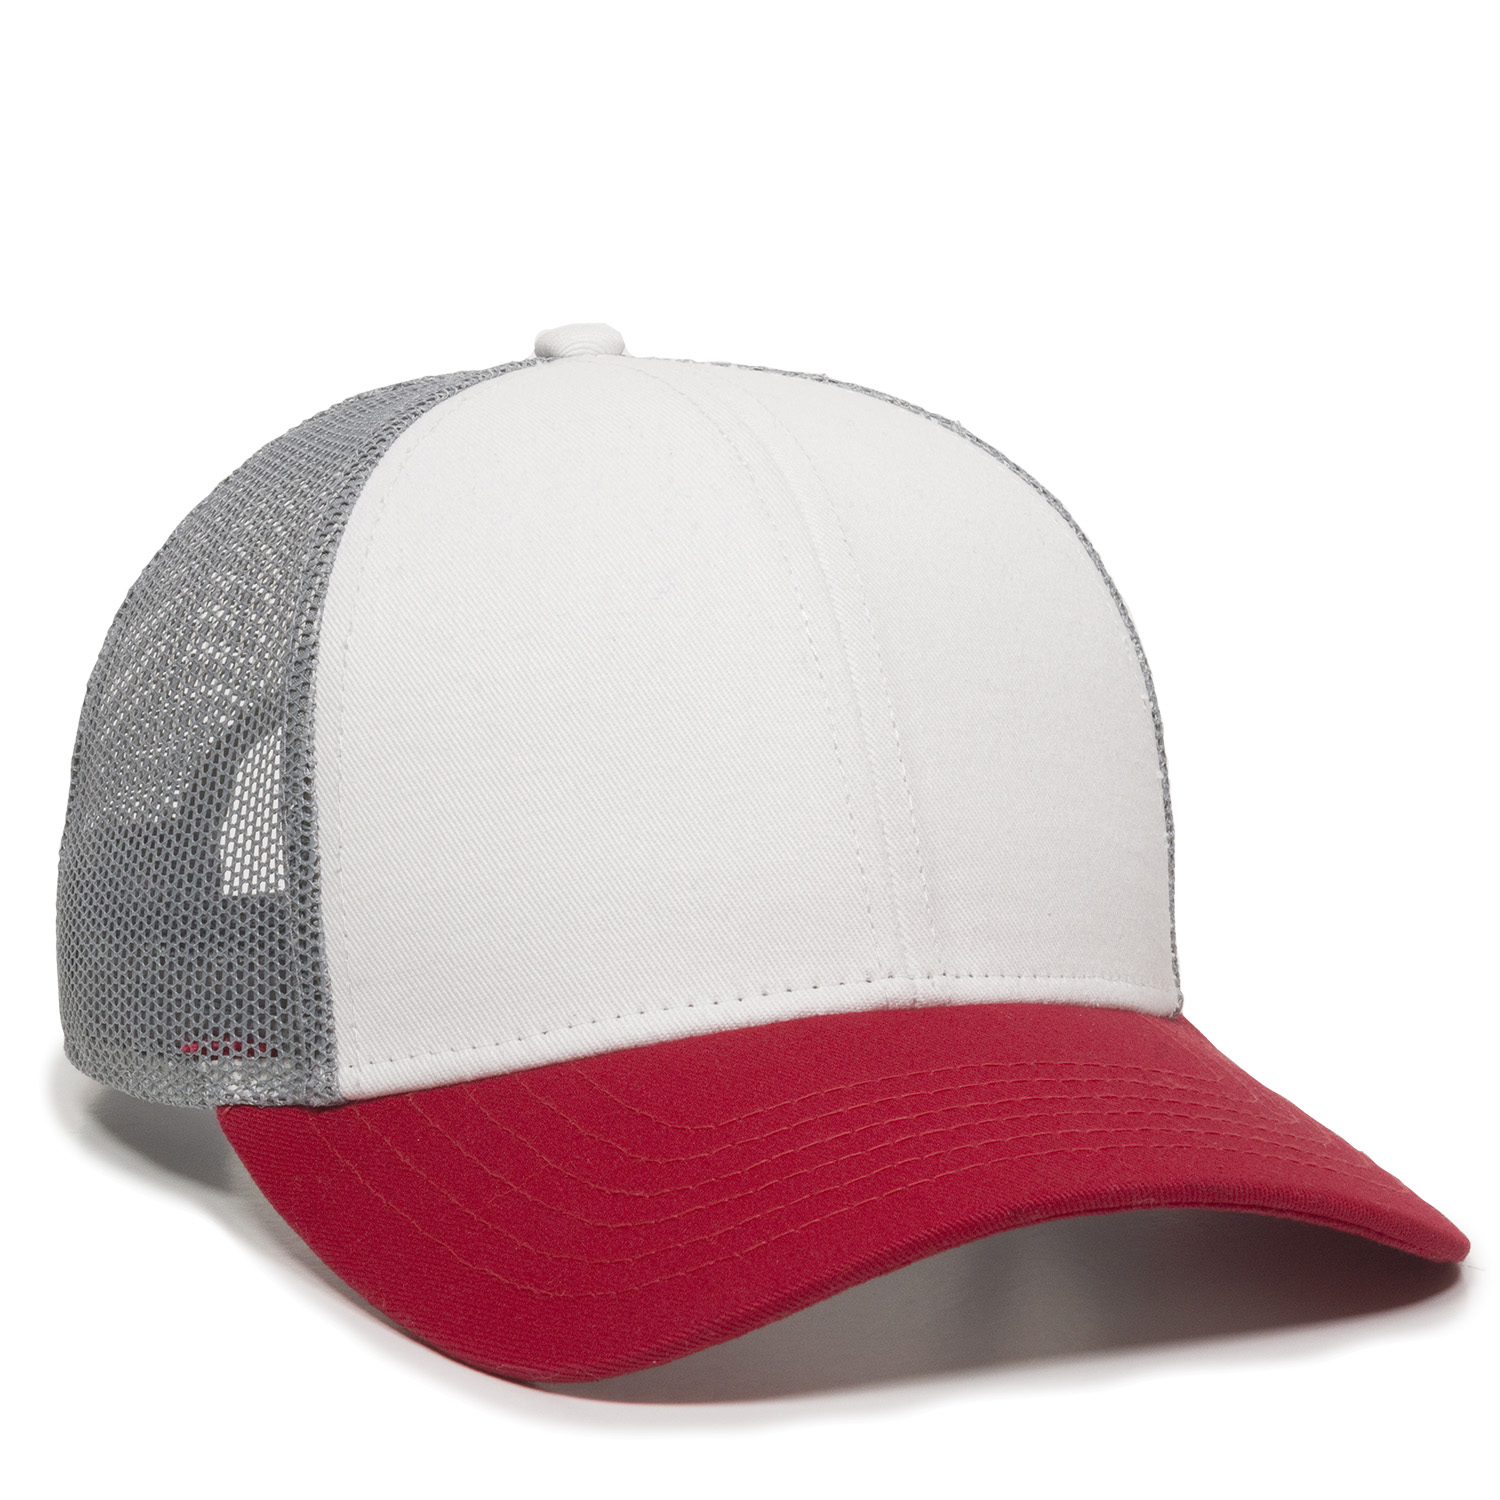 White/Grey/Red